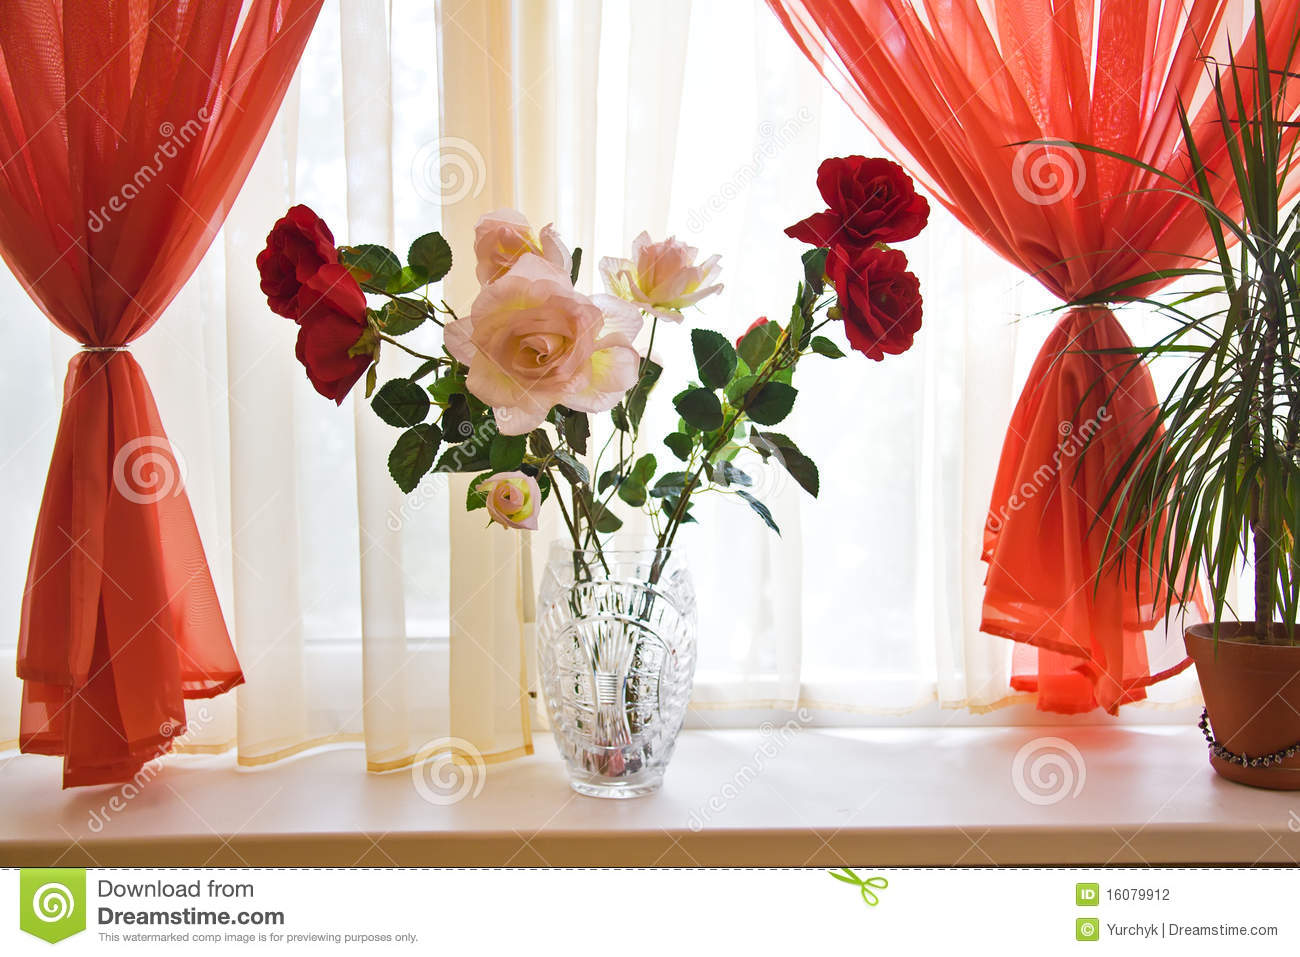 Bouquet Of Roses On Window Sill Stock Photography - Image: 16079912